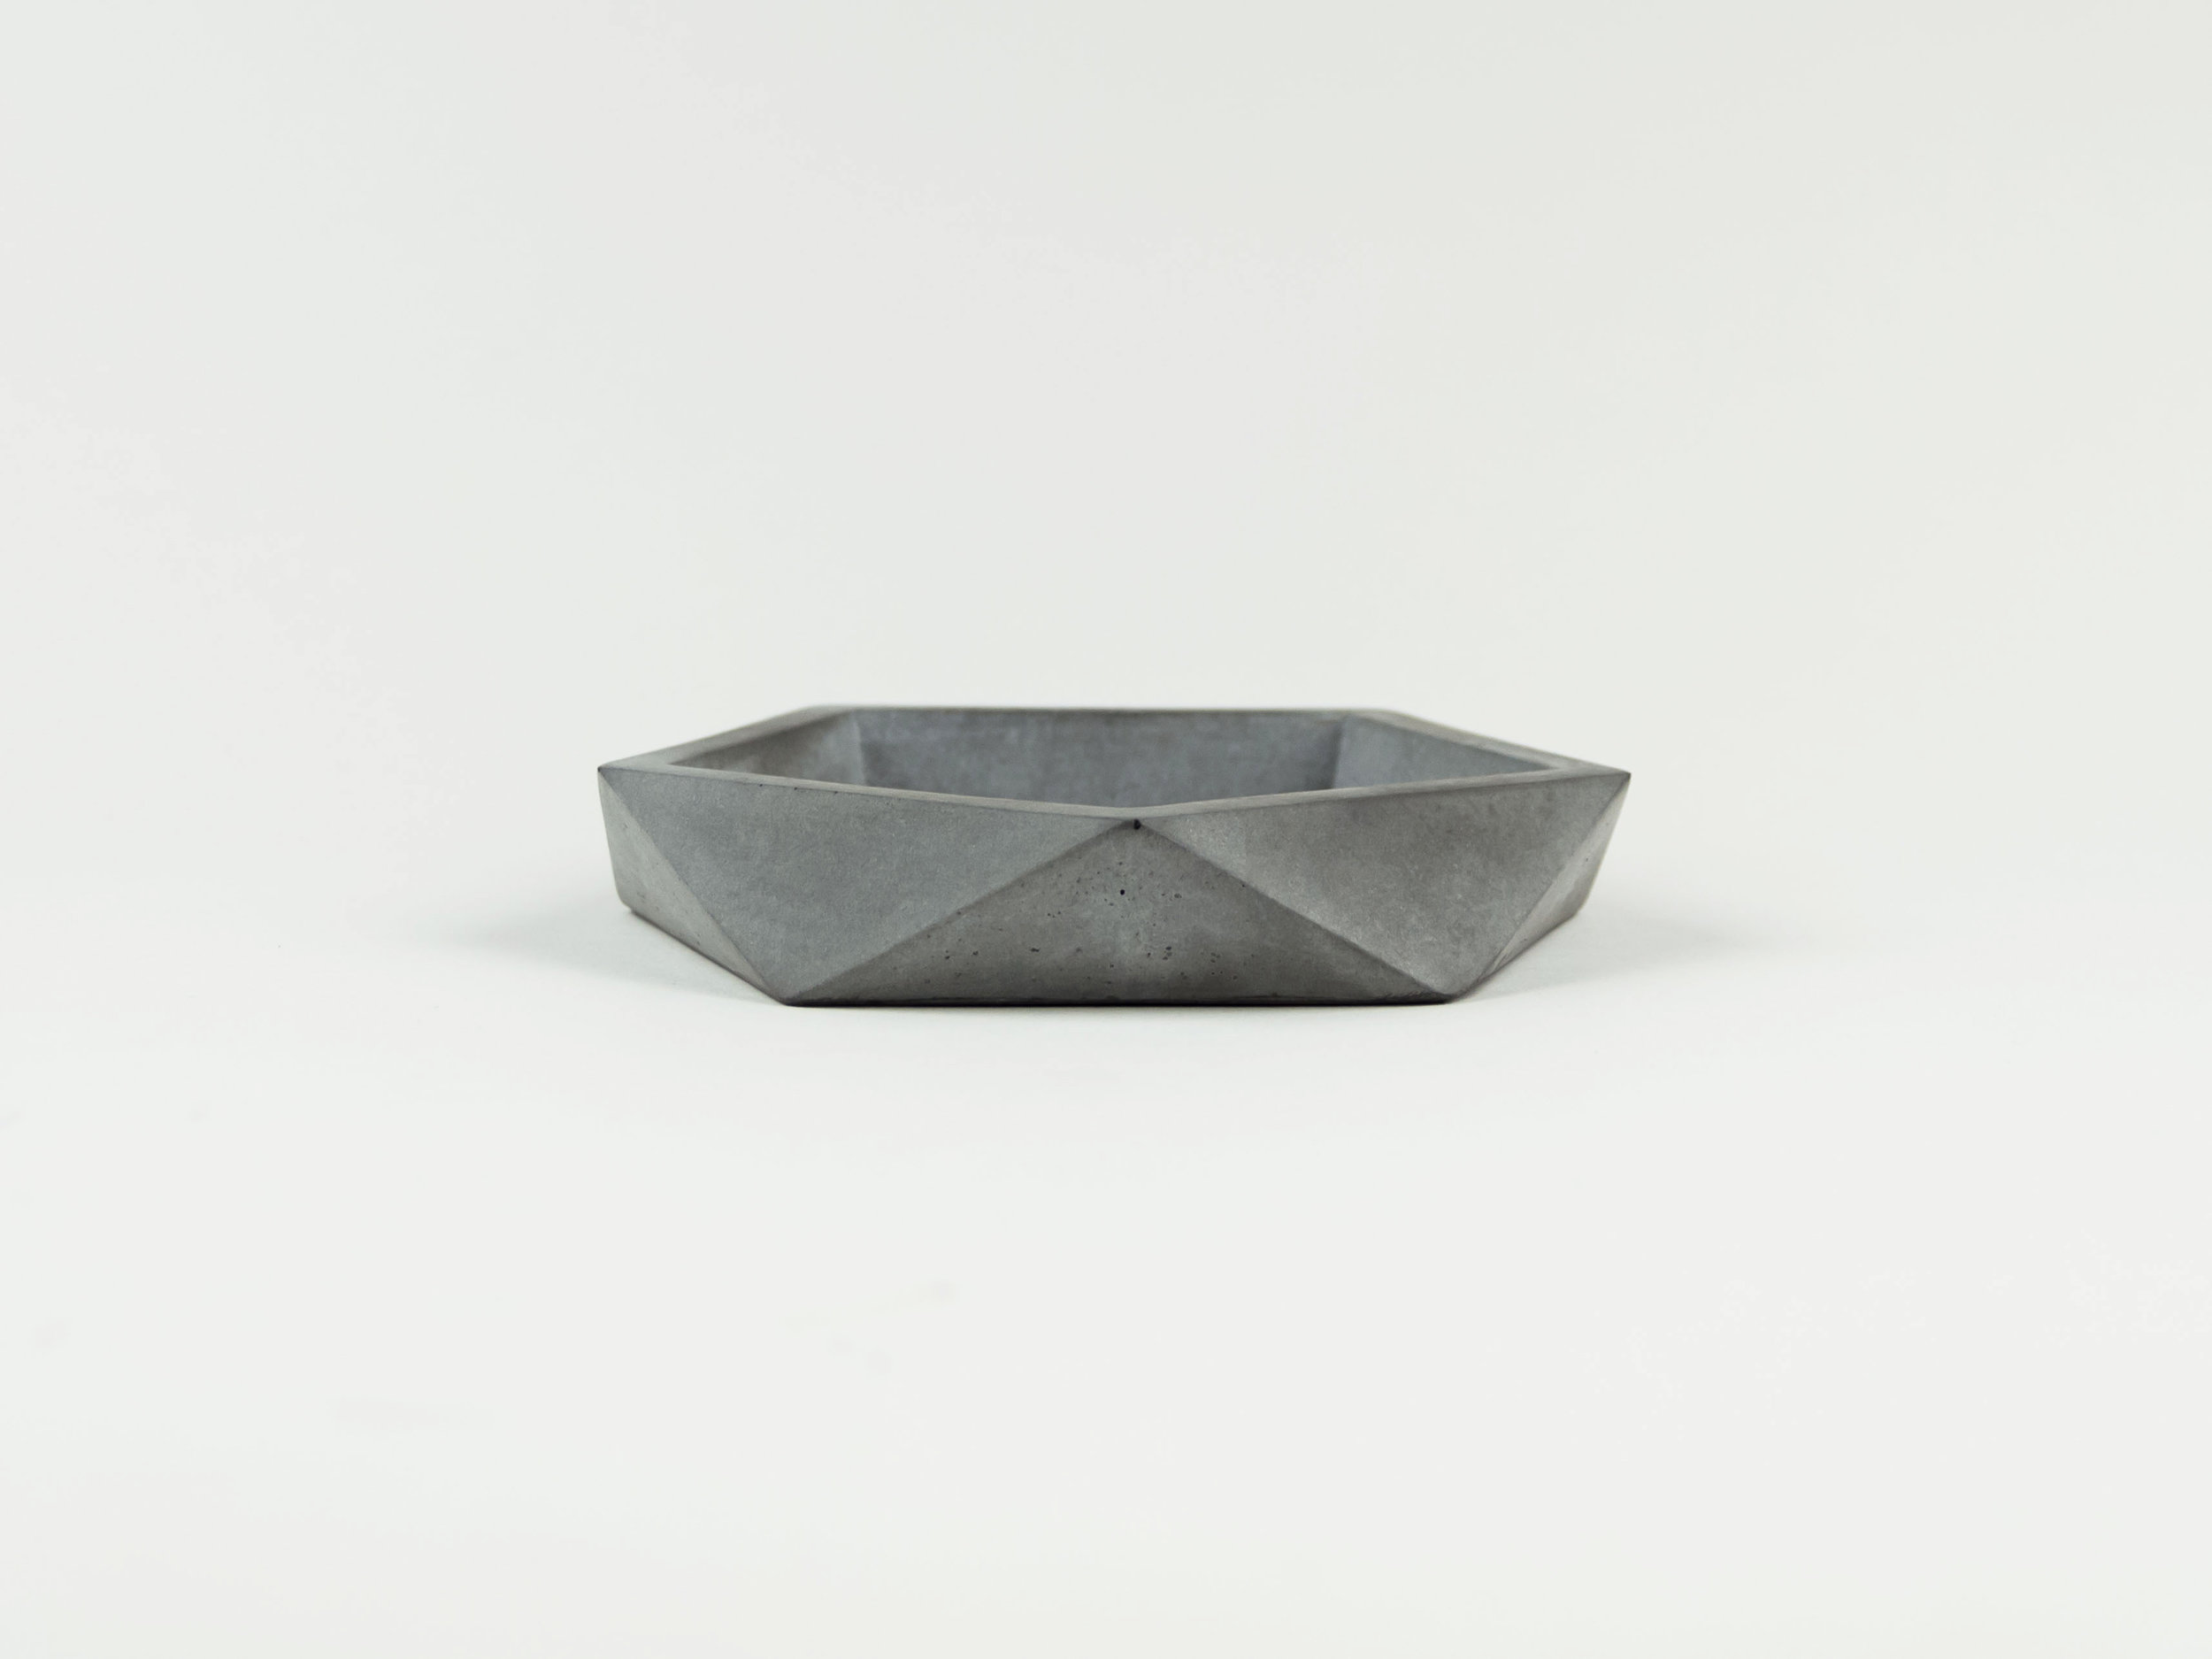 Simple-Charcoal-Gray-Concrete-Dish-with-Geometric-Design-by-The-Savvy-heart.jpg